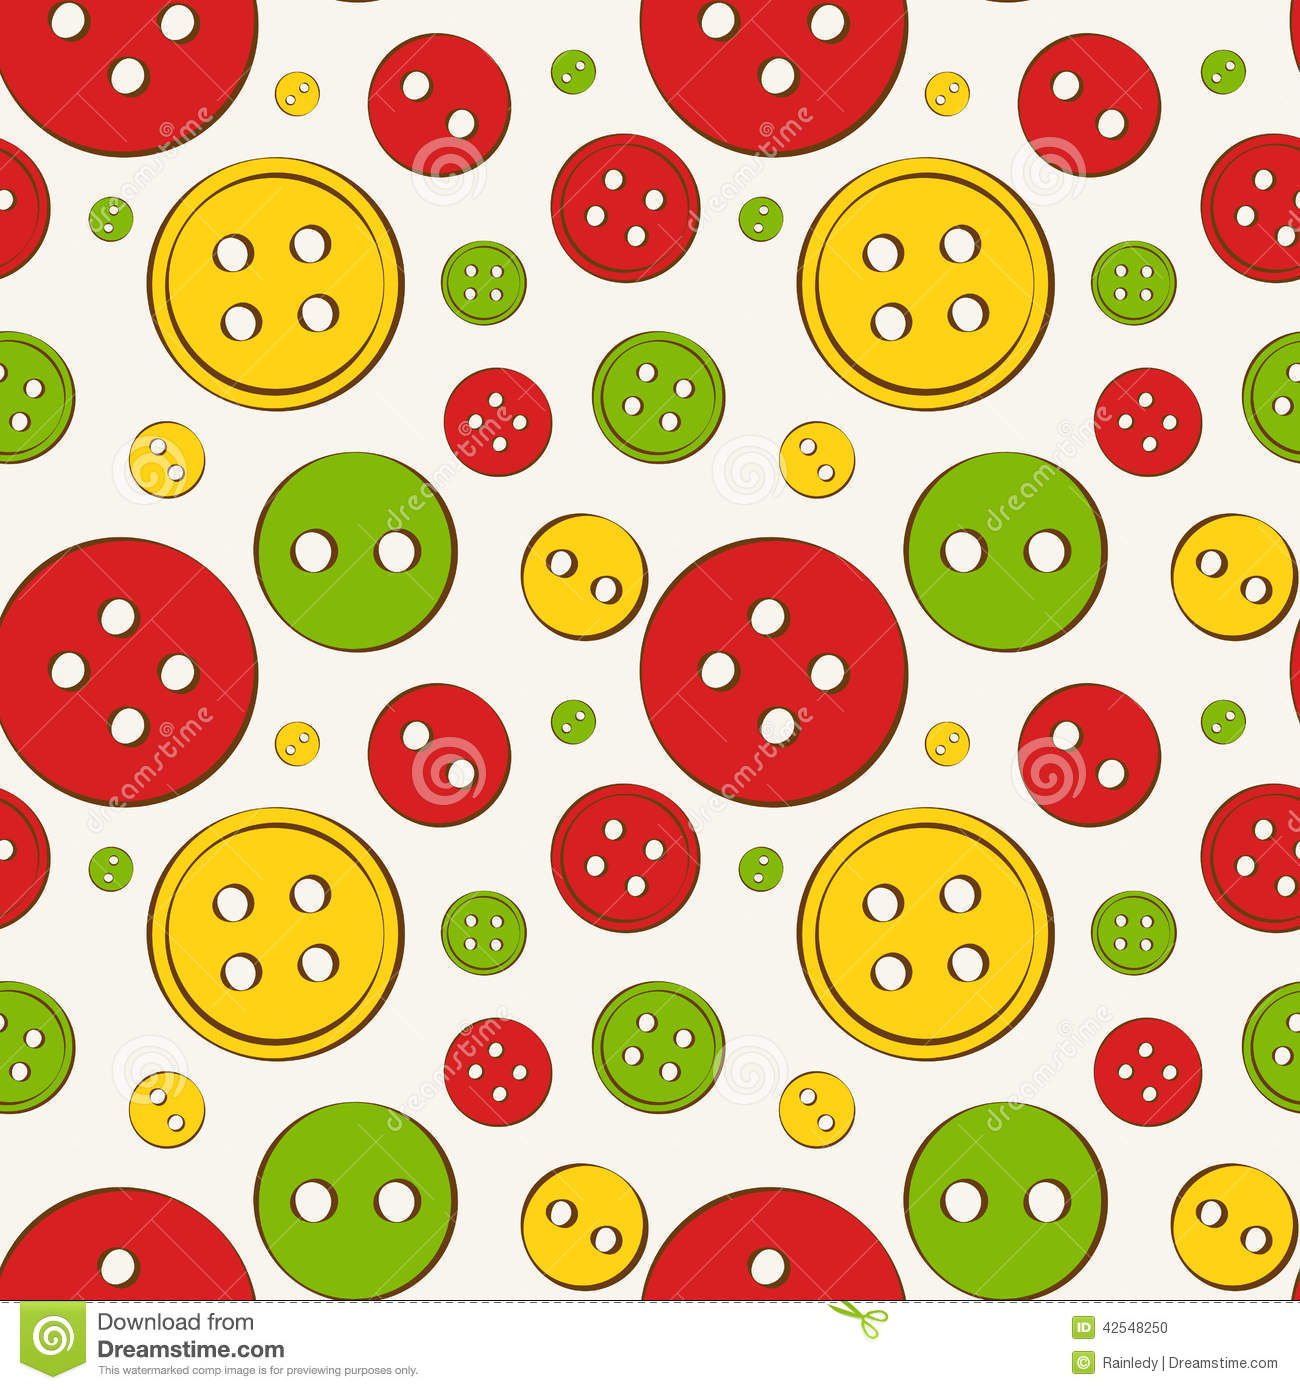 Seamless background with buttons. Vector illustration.